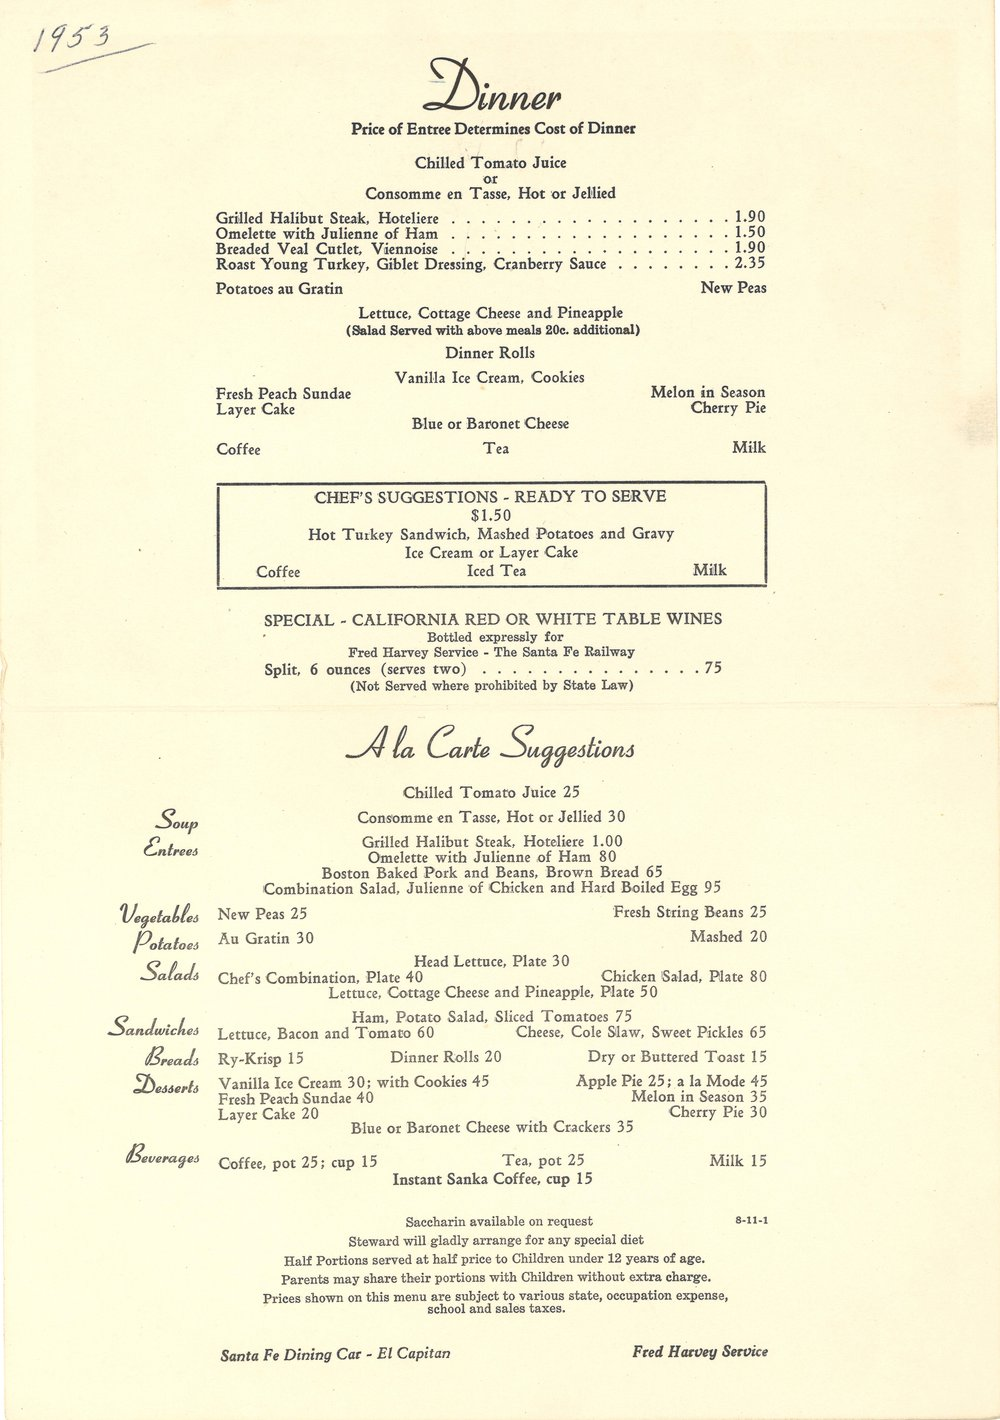 Santa Fe Grand Canyon Dinner Menu 1953-2.jpg